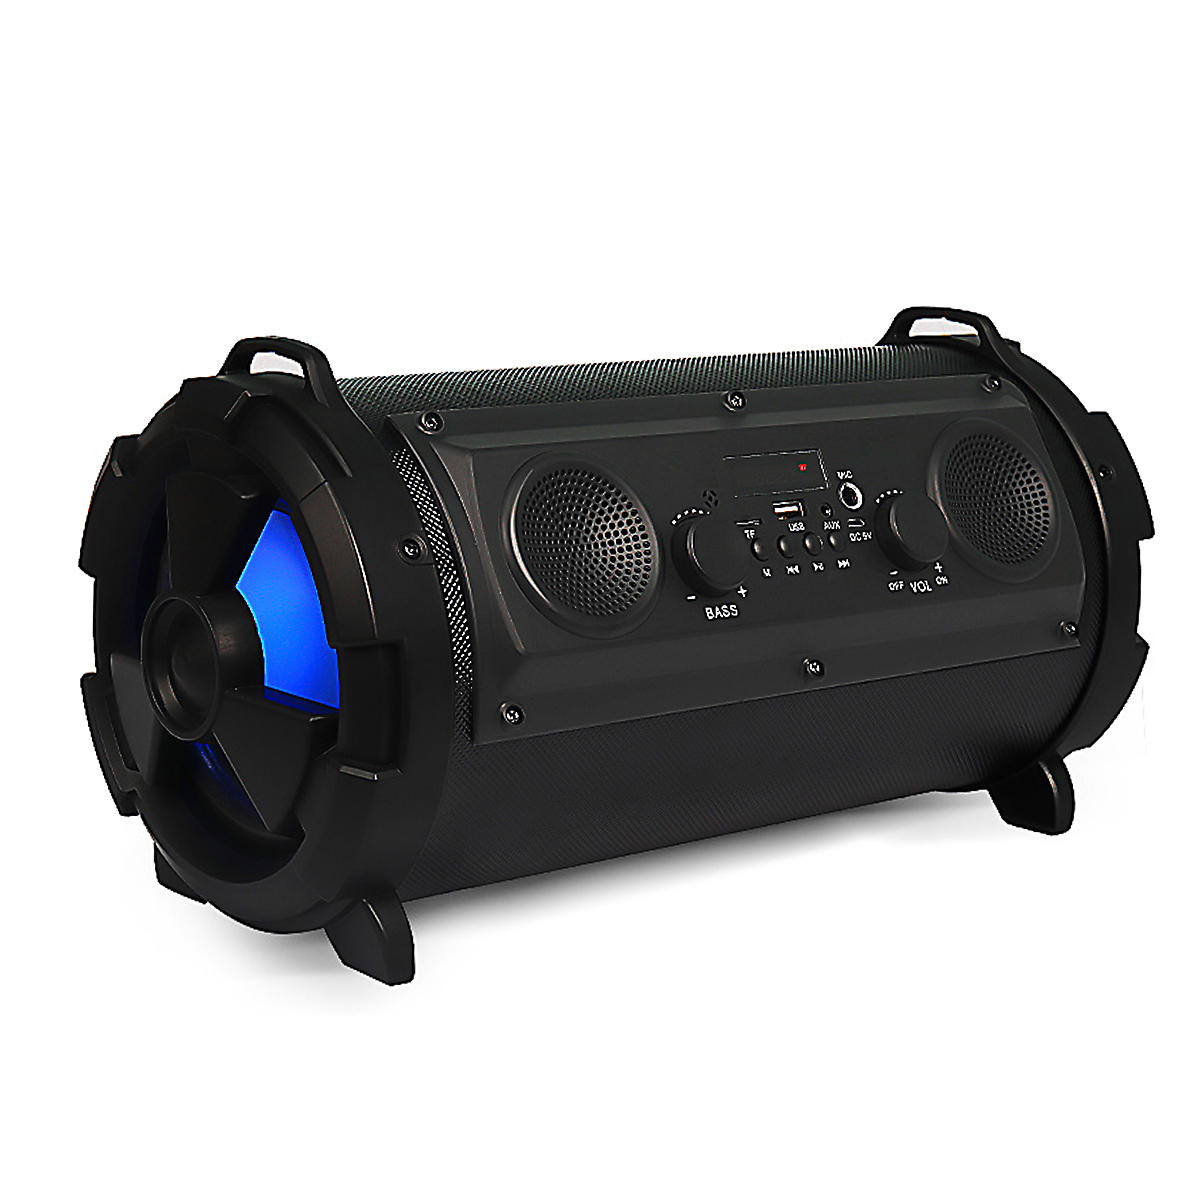 Built-in 2000mAh Li-battery 15W Wireless Bluetooth Speaker with FM Radio/AUX Input/TF Card Function